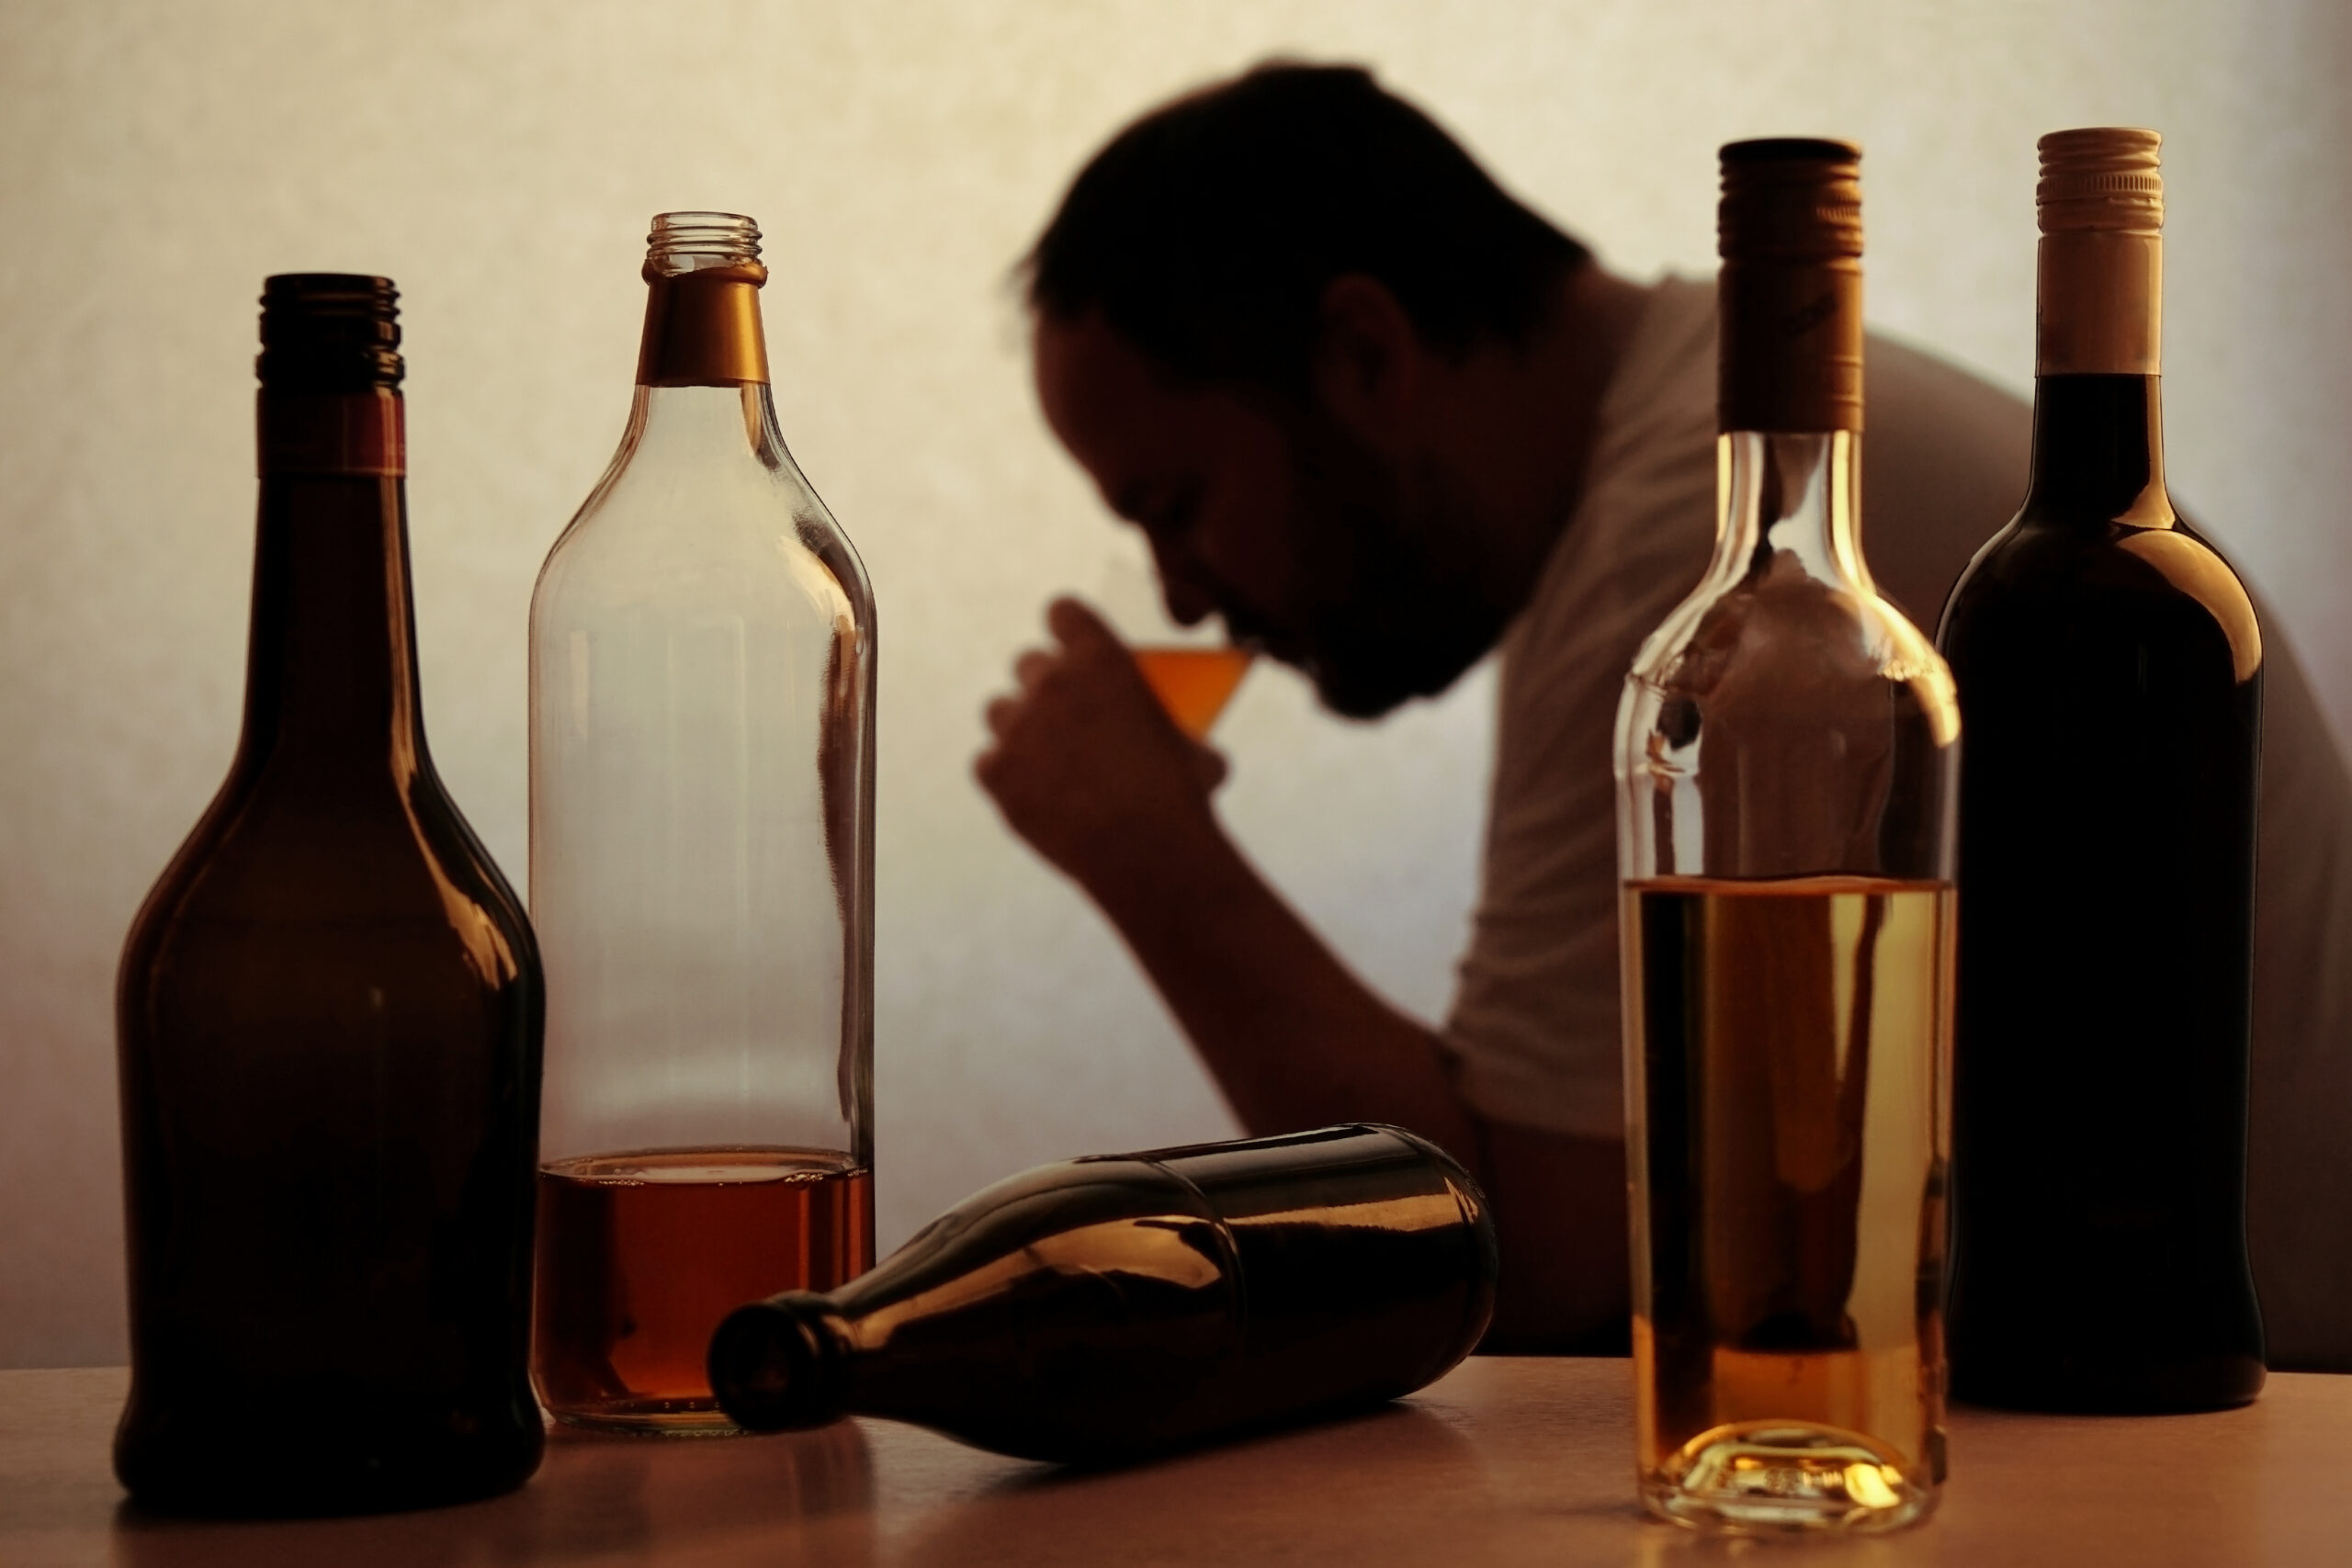 Silhouette,Of,Anonymous,Alcoholic,Person,Drinking,Behind,Bottles,Of,Alcohol